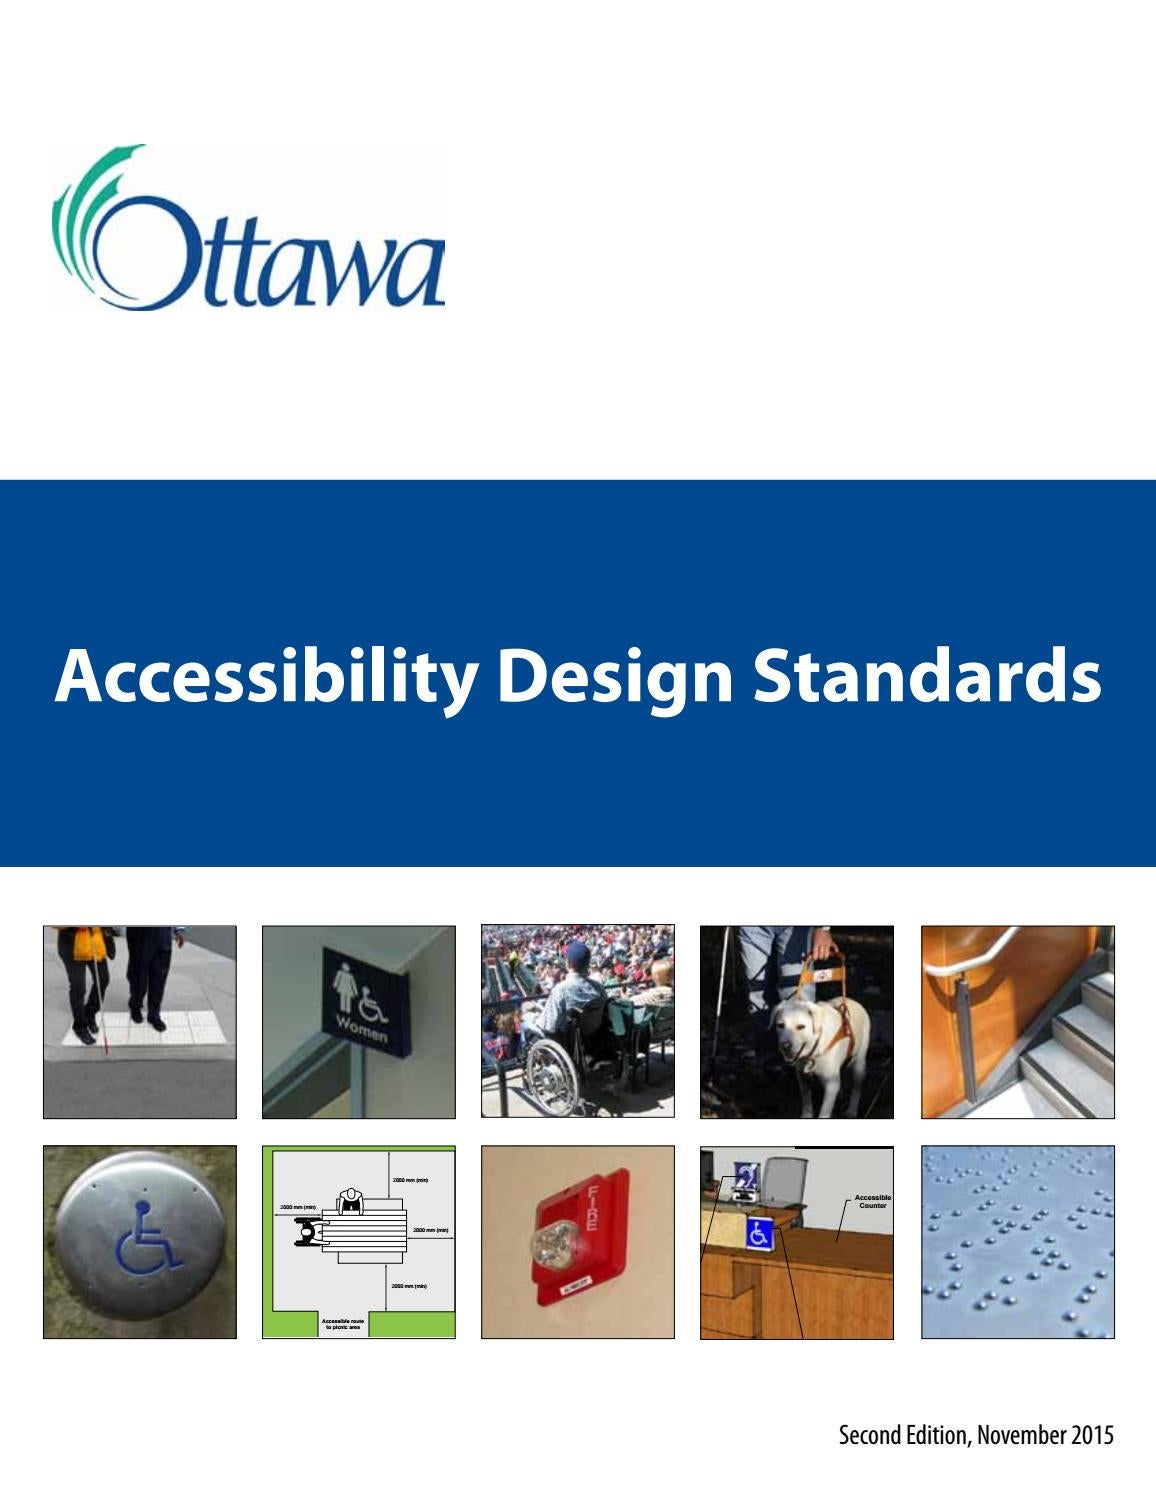 Fauteuil Roulant Manuel Weely Nov Accessibility Design Standards En By Viet My Pham Issuu